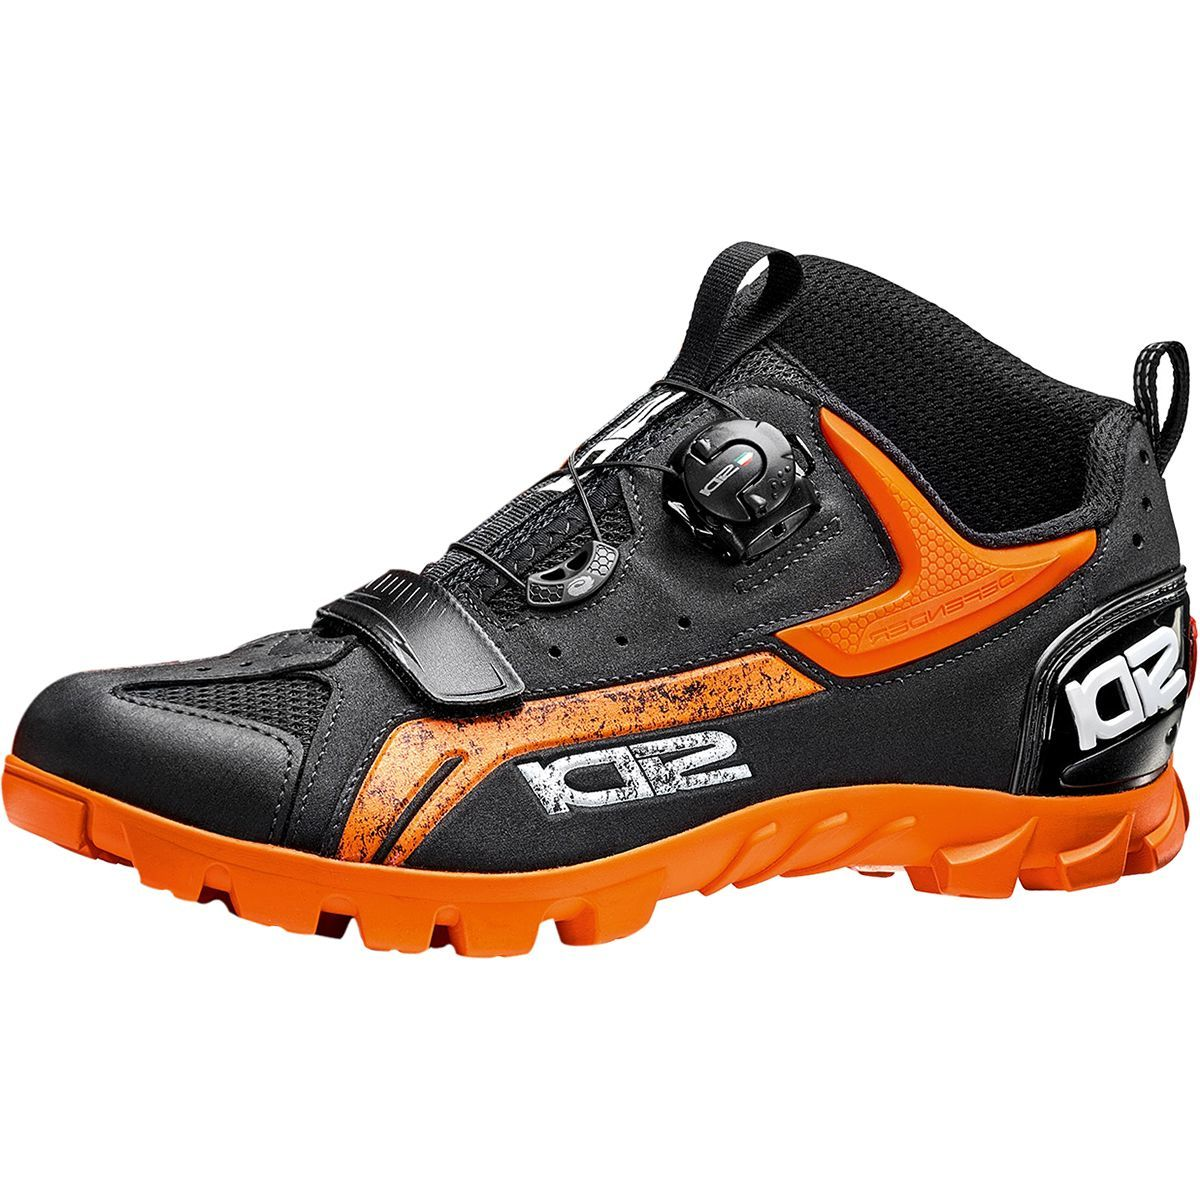 Sidi Defender Cycling Shoe - Men's